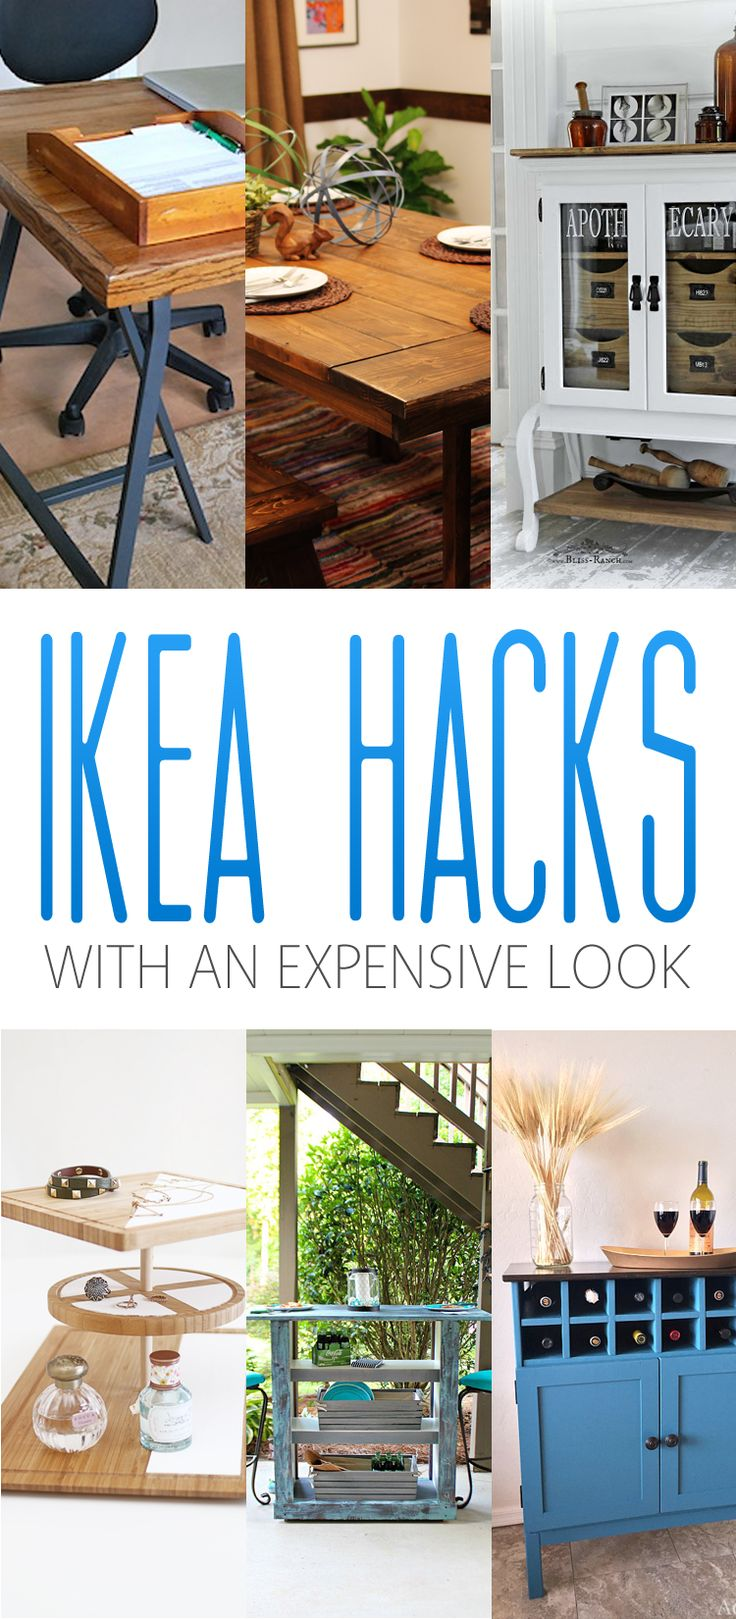 IKEA Hacks with an Expensive Look - The Cottage Market